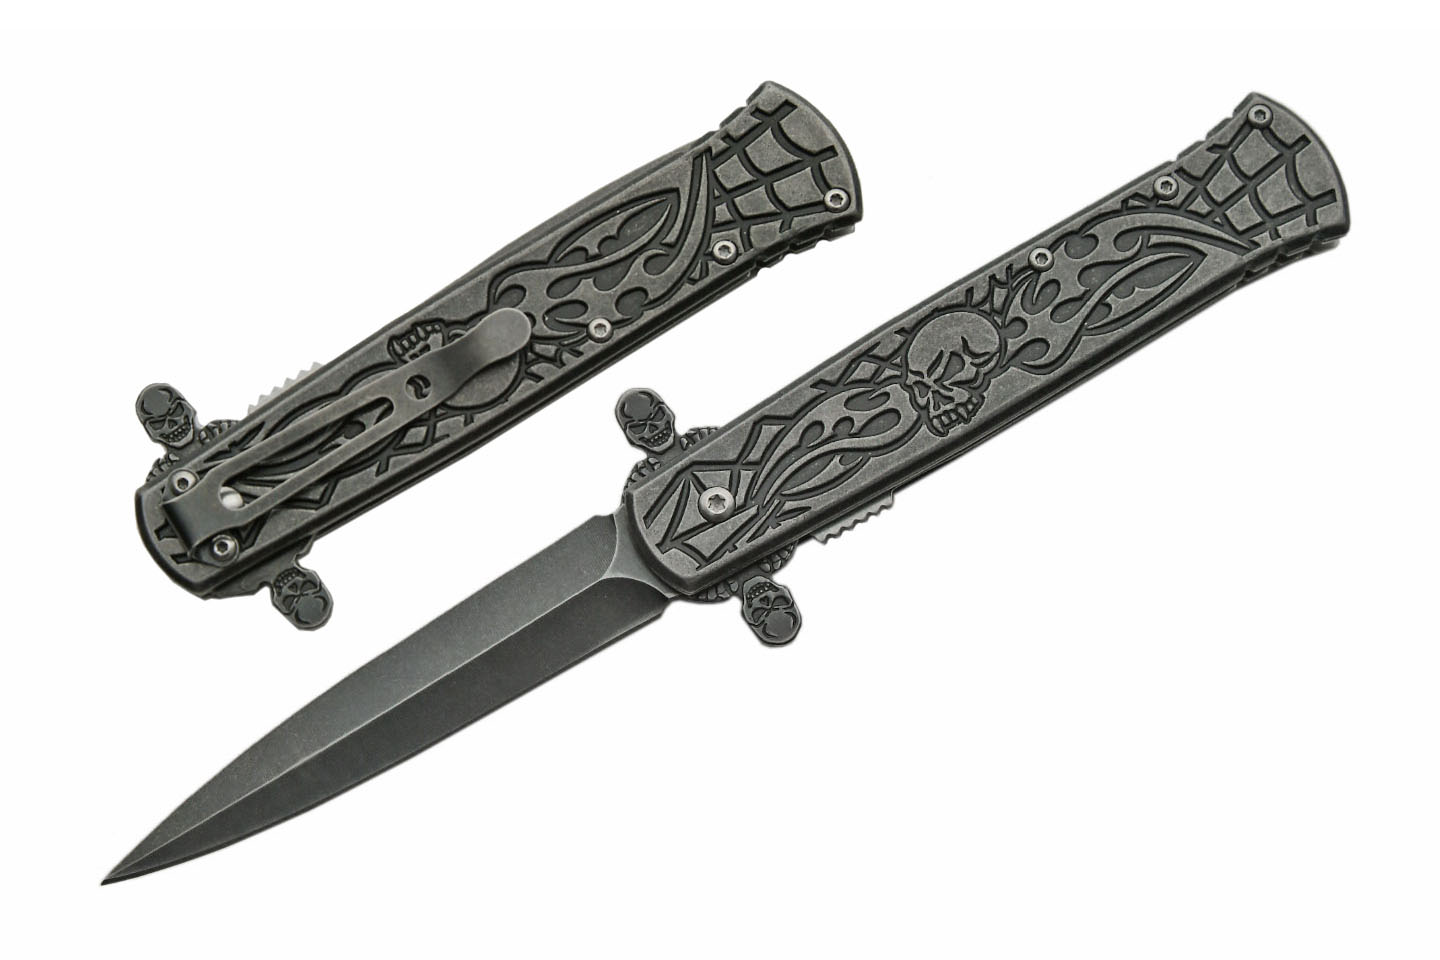 Spring-Assist Folding Knife    Tac-Force Stone Gray Skull Flame Stiletto Blade